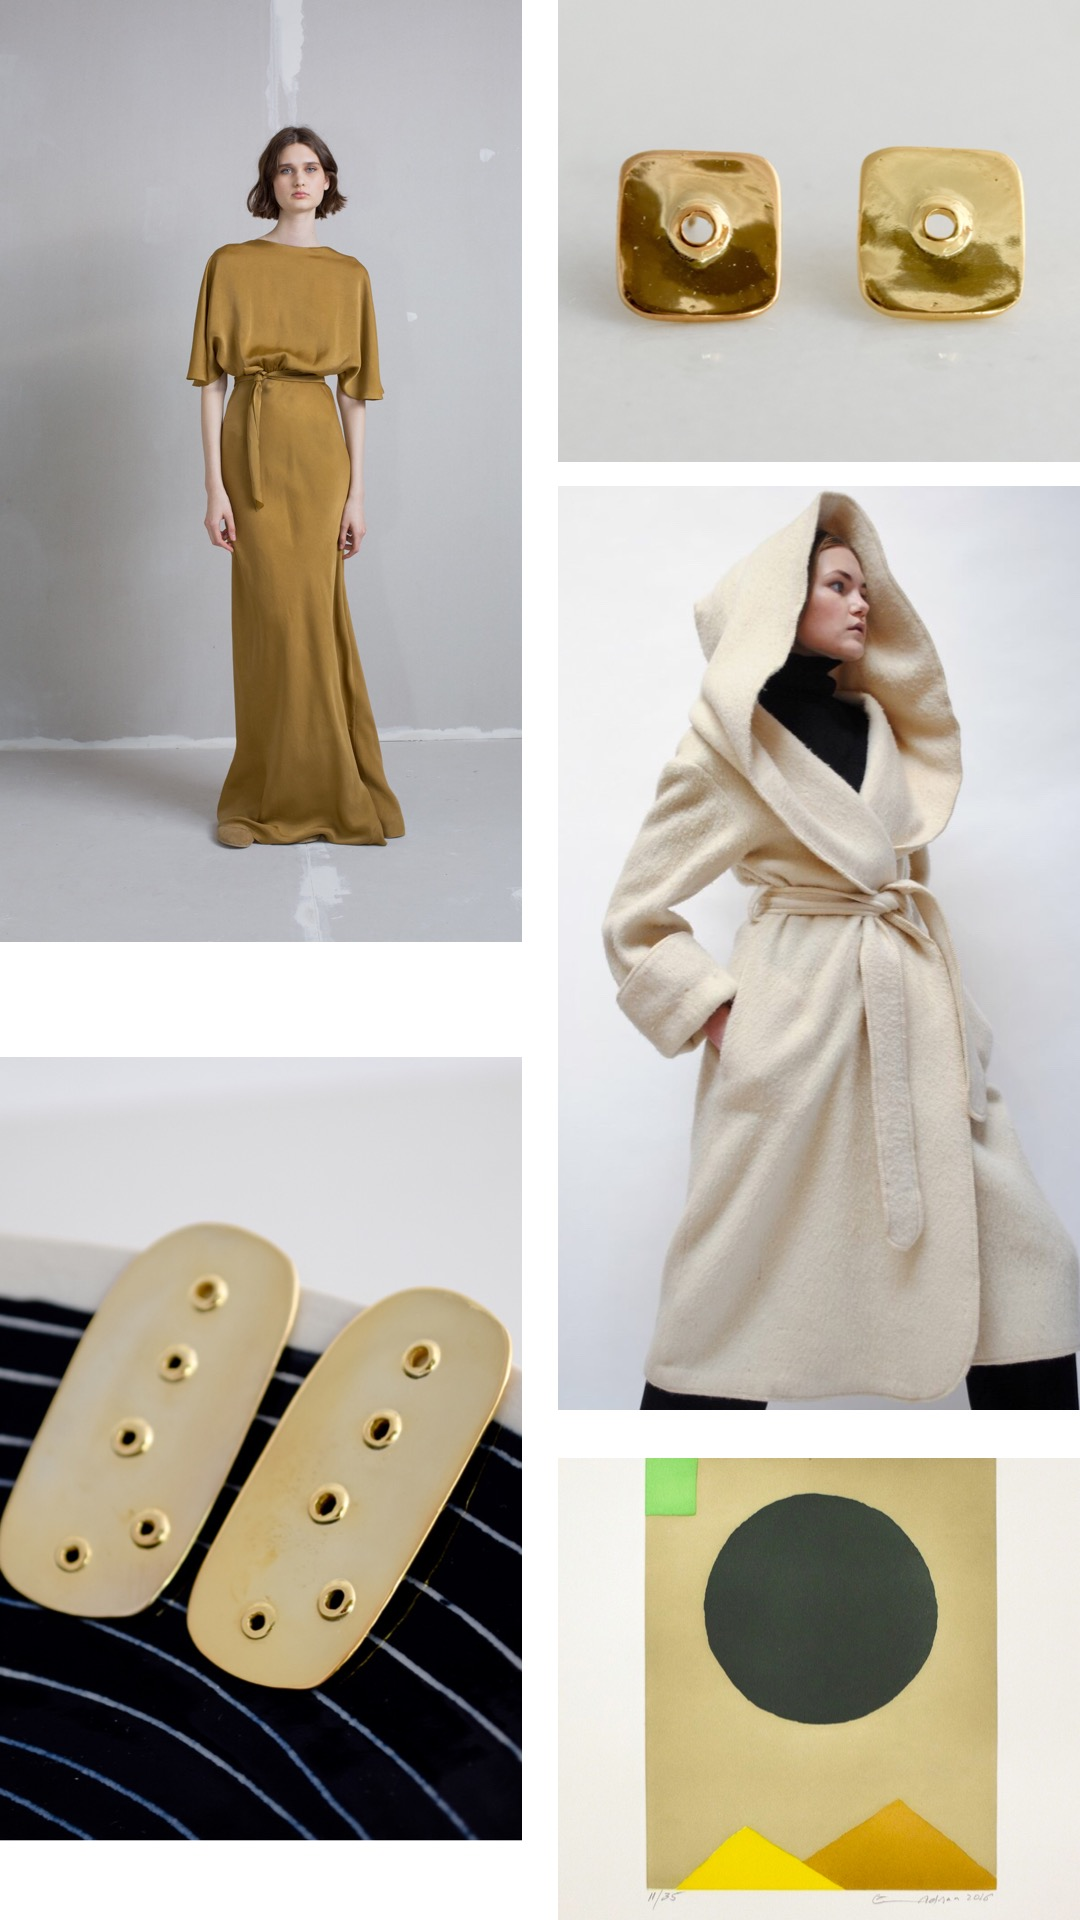 Stunning  Cortana  Mora golden cupro Evening Dress, matching VUOTO STUDS in 14k, Vintage Alpaca Hooded Coat, Circa 1940s from  Desert Vintage . VUOTO EARRINGS LARGE in 14k and an artwork from  Etel Adnan